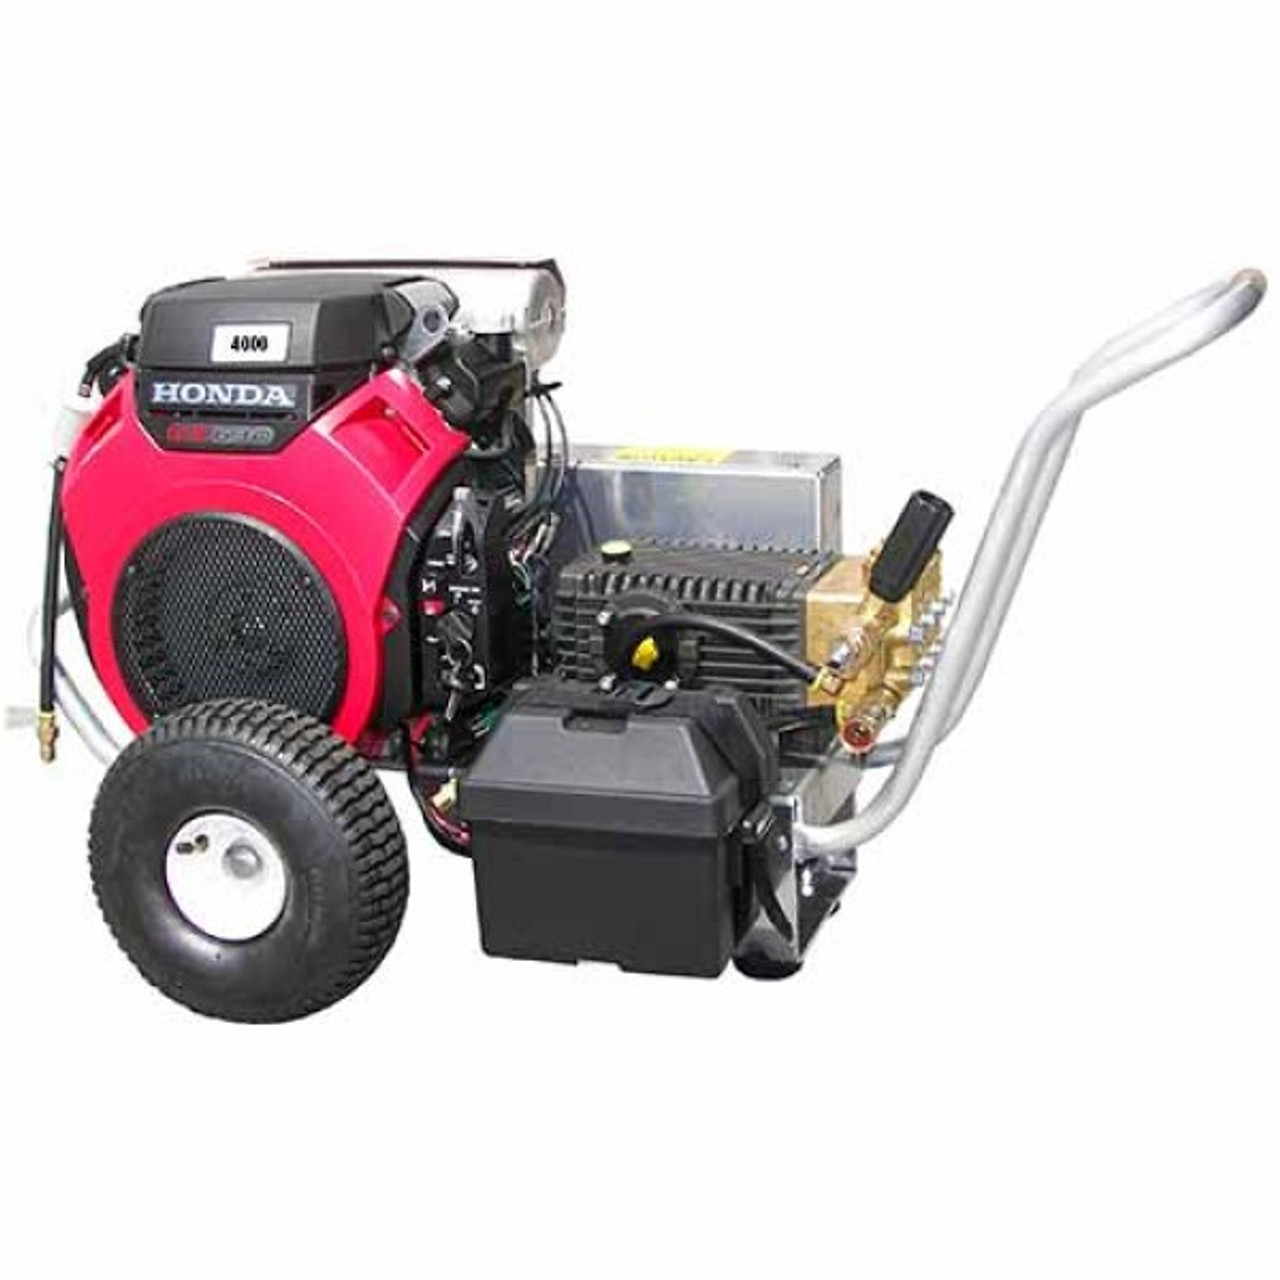 Pressure Pro VB5040HAEA411 5 0 GPM 4000 PSI Gas Pressure Washer